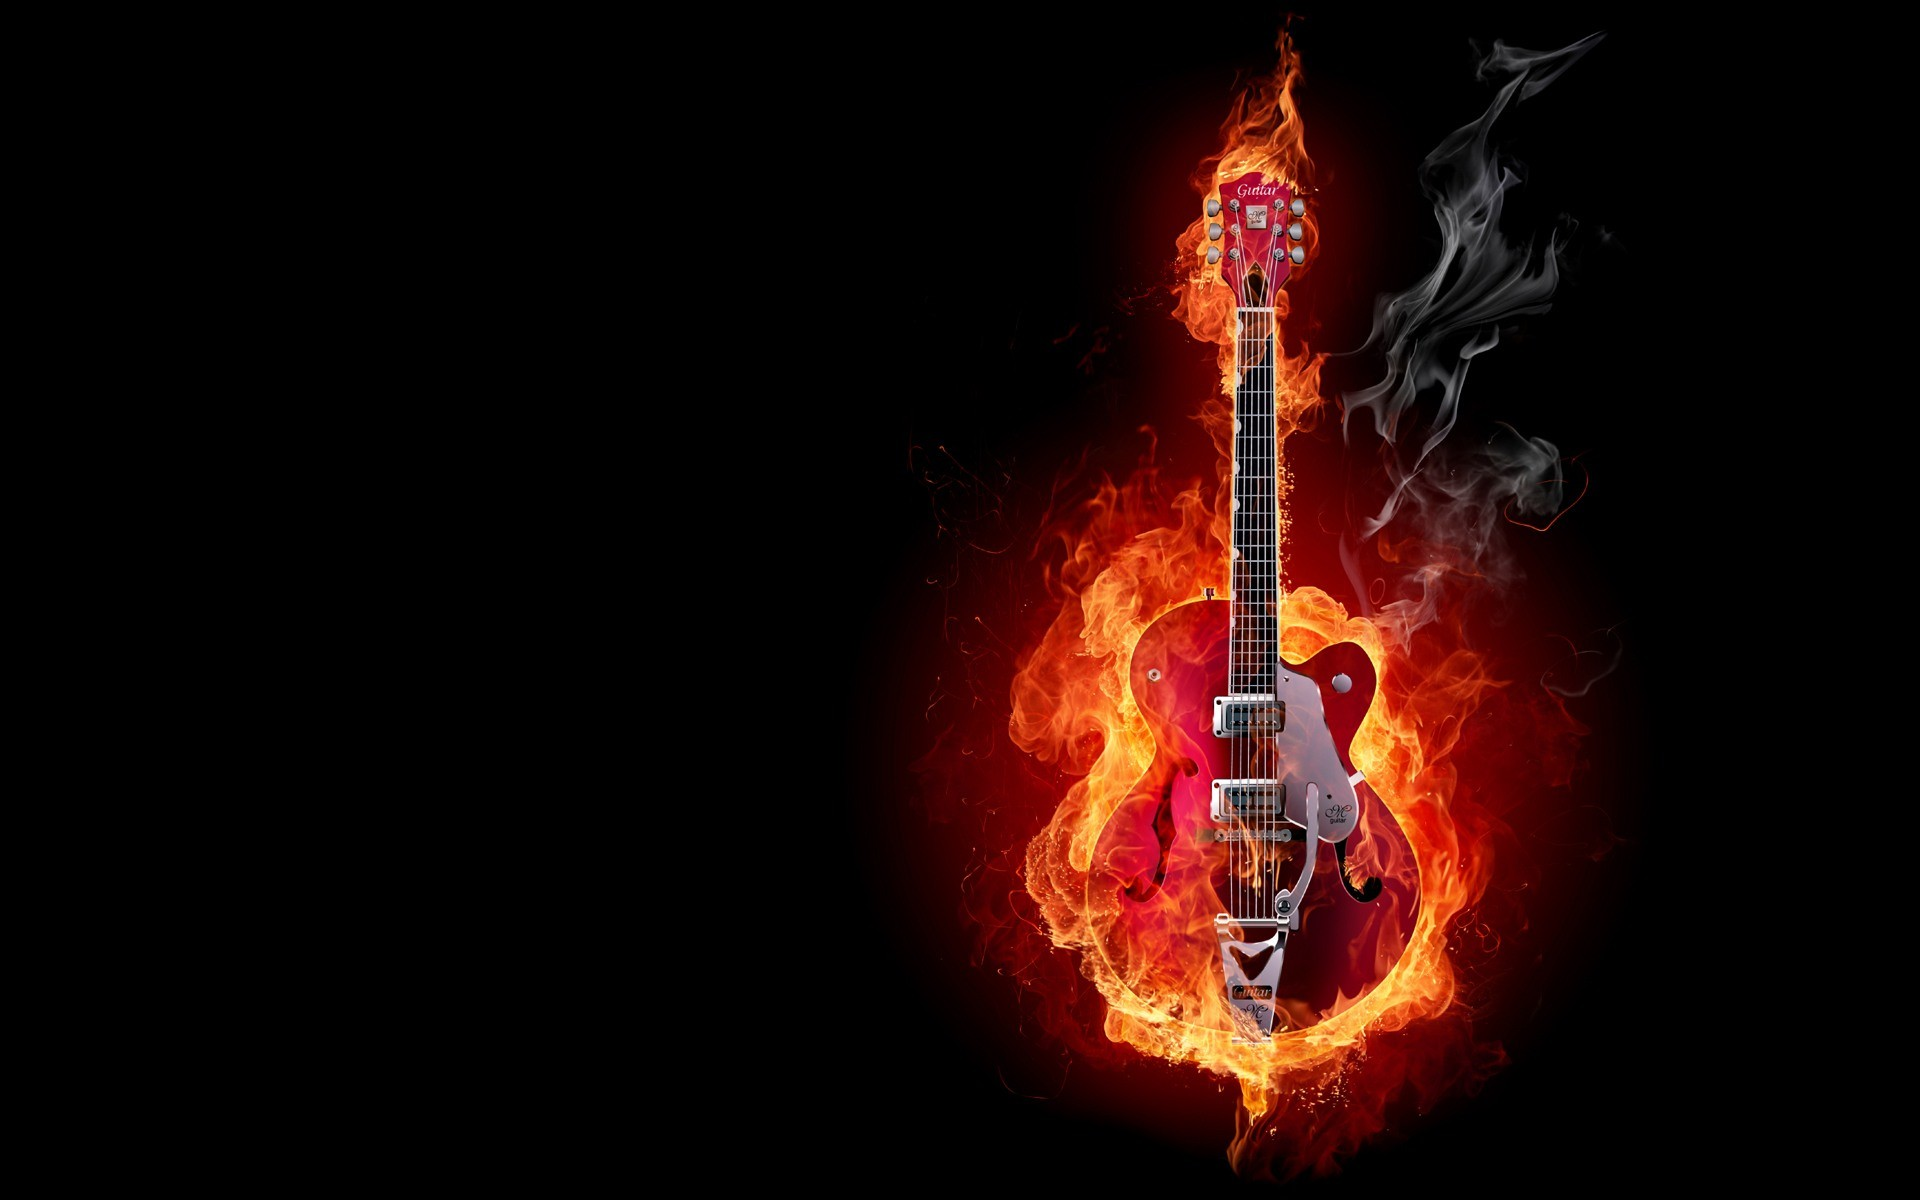 Electric Guitar On Flame Wallpaper 1920x1200 px